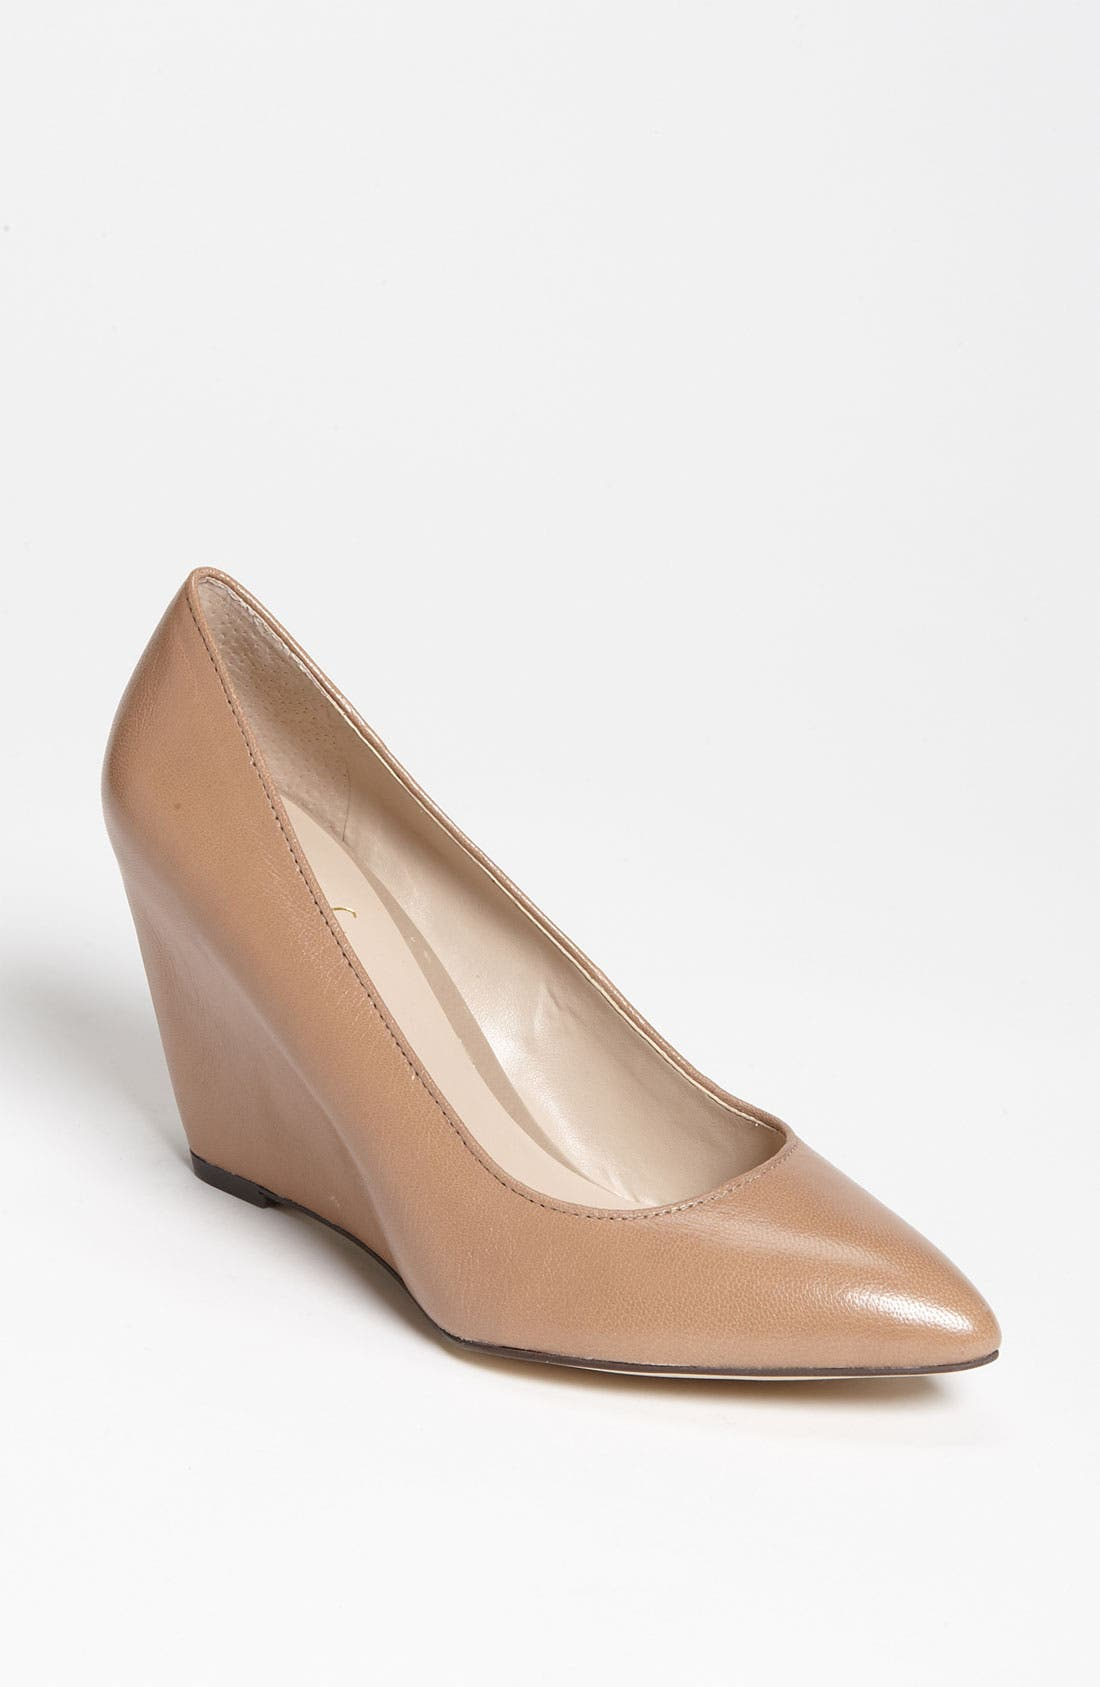 Alternate Image 1 Selected - Franco Sarto 'Impell' Pump